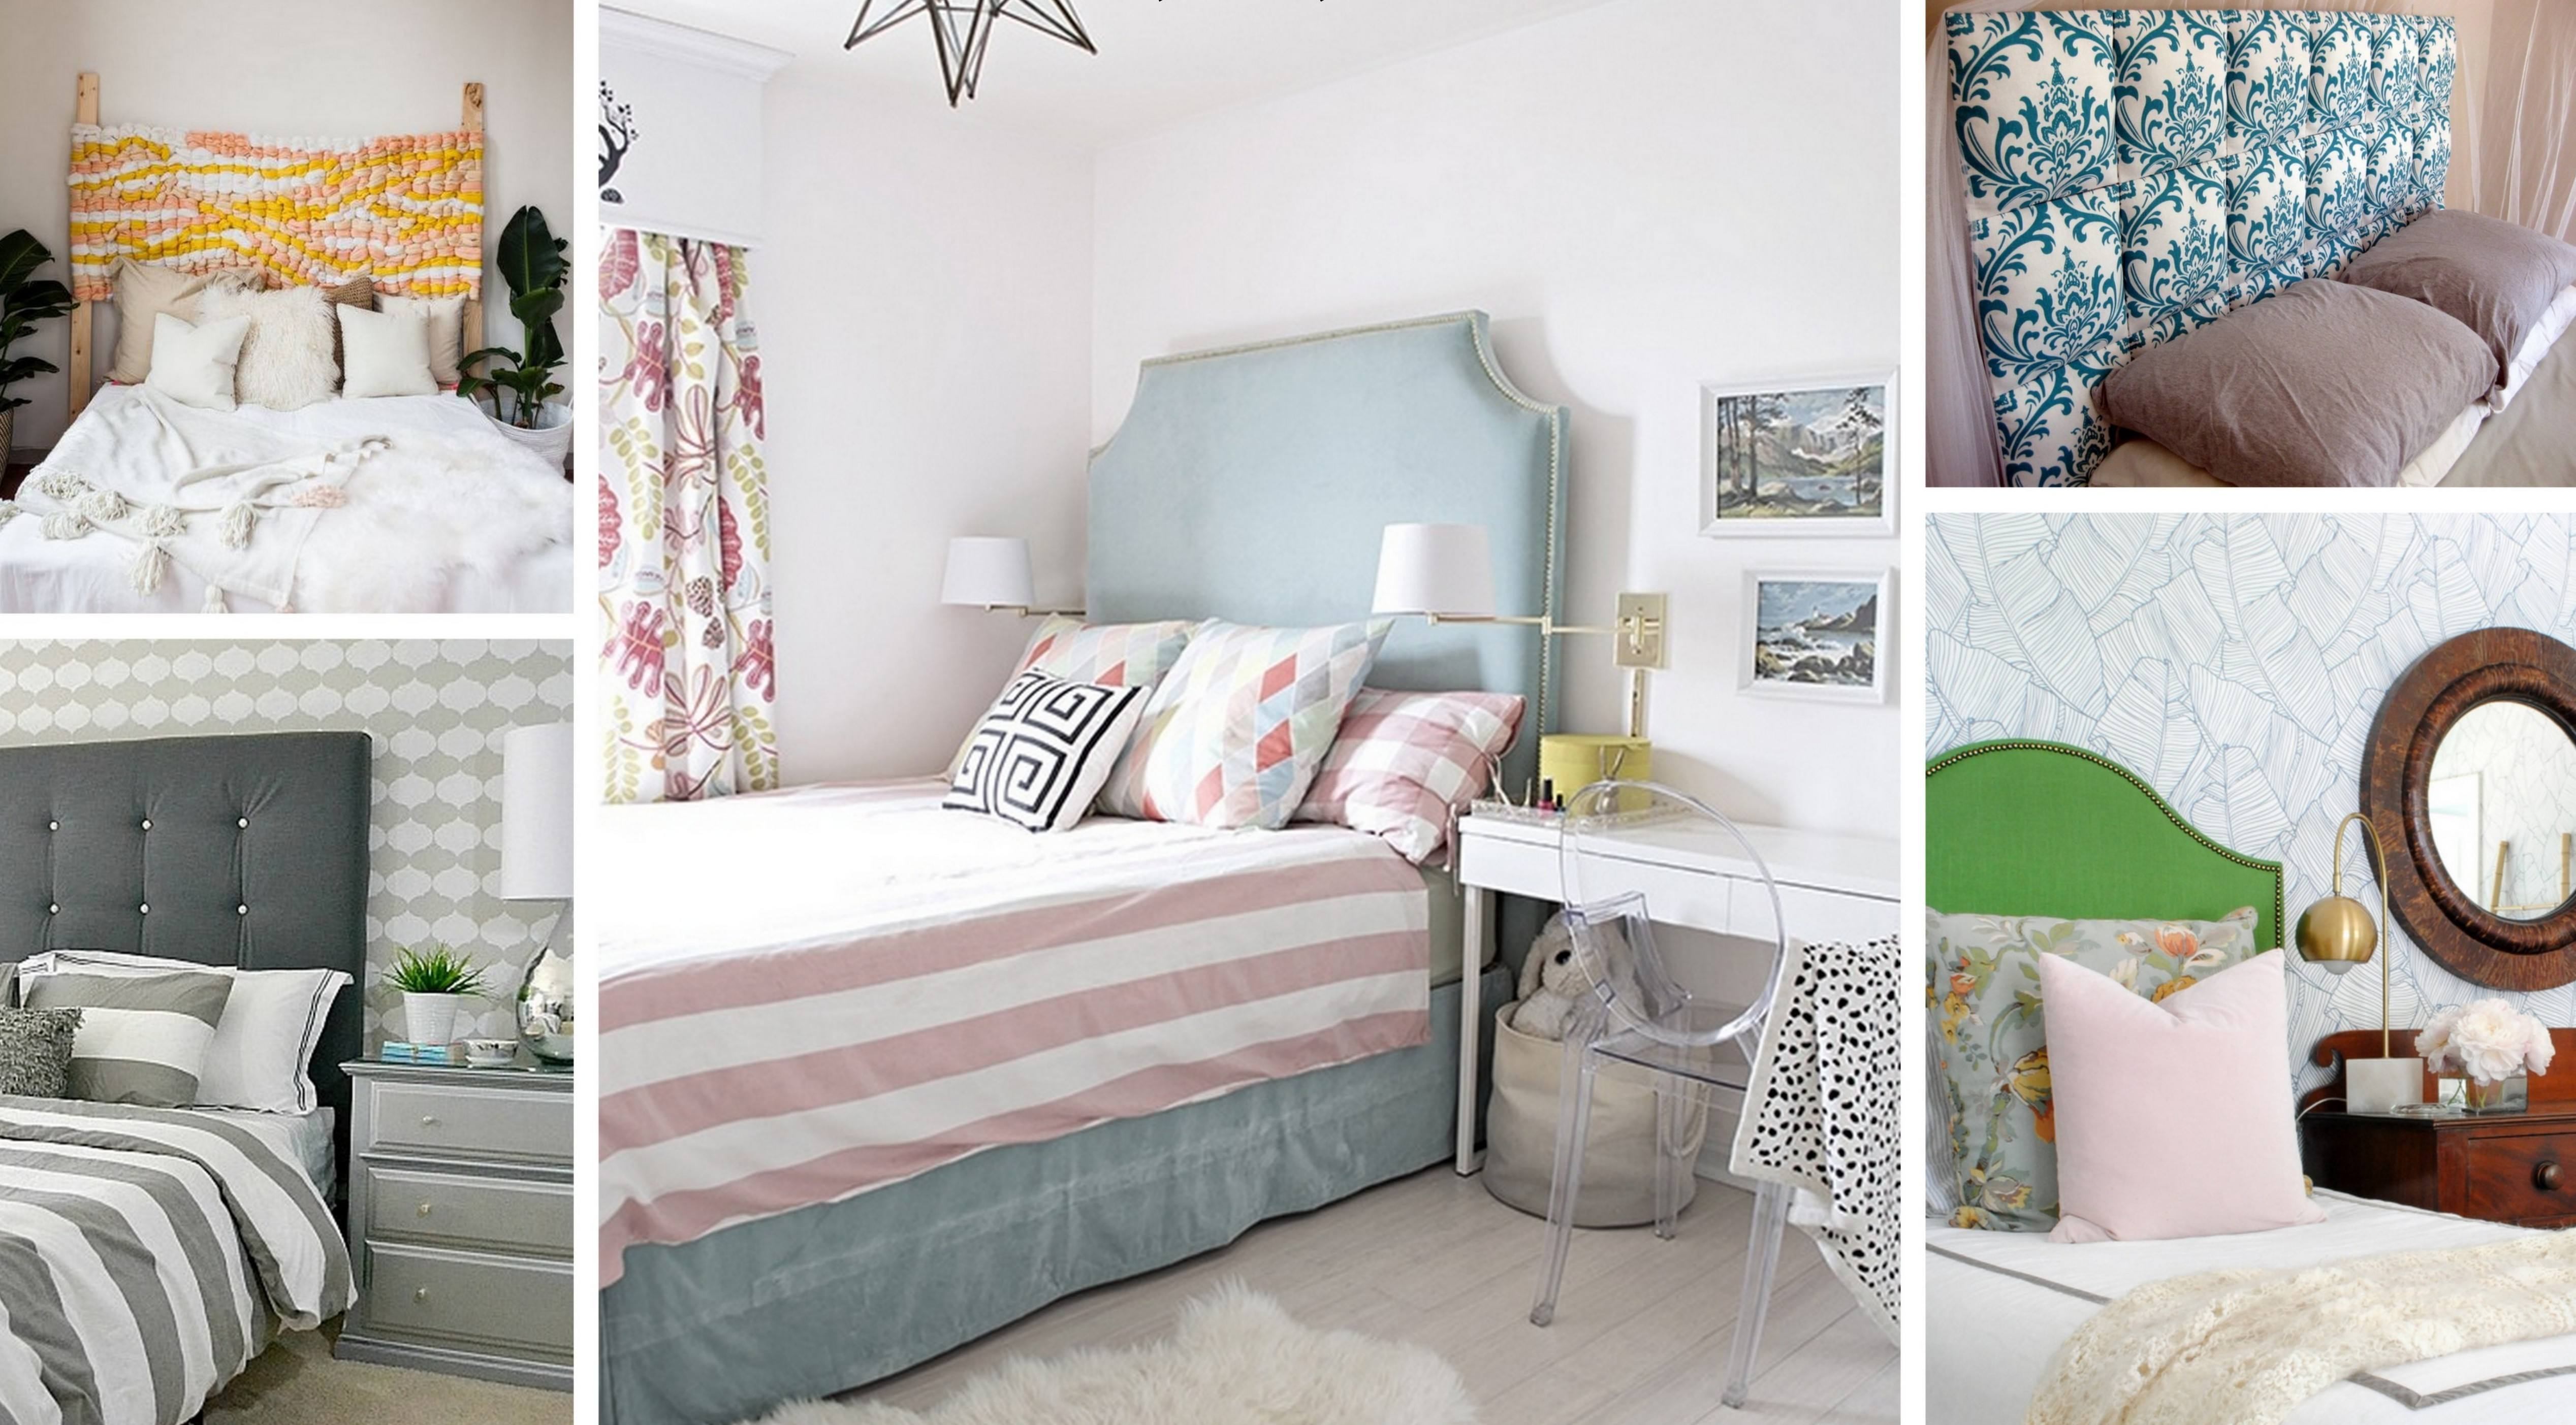 Upholstered Headboard Ideas for Kids   to buy or DIY